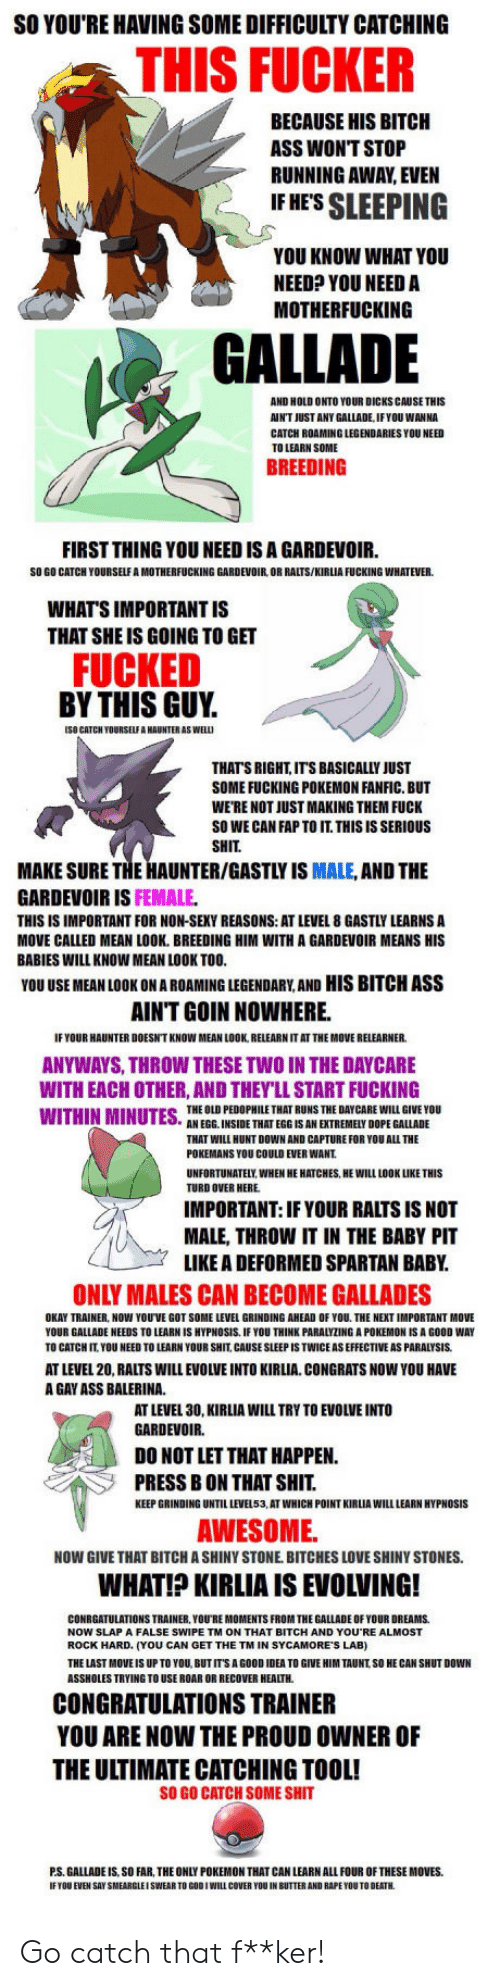 Fap To: SO YOU'RE HAVING SOME DIFFICULTY CATCHING  THIS FUCKER  BECAUSE HIS BITCH  ASS WONT STOP  RUNNING AWAY EVEN  IF HES SLEEPING  YOU KNOW WHAT YOU  NEED? YOU NEED A  MOTHERFUCKING  GALLADE  AND HOLD ONTO YOUR DICKS CAUSE THIS  AIN'T JUST ANY GALLADE, IFYOU WANNA  CATCH ROAMING LEGENDARIES YOU NEED  TO LEARN SOME  BREEDING  FIRST THING YOU NEED IS A GARDEVOIR.  SO GO CATCH YOURSELF A MOTHERFUCKING GARDEVOIR, OR RALTS/KIRLIA FUCKING WHATEVER  WHAT'S IMPORTANT IS  THAT SHE IS GOING TO GET  FUCKED  BY THIS GUY.  (SO CATCH YOURSELF A HAUNTER AS WEL  THATS RIGHT, ITS BASICALLY JUST  SOME FUCKING POKEMON FANFIC. BUT  WE'RE NOT JUST MAKING THEM FUCK  SO WE CAN FAP TO IT. THISISSERIOUS  SHIT  MAKE SURE THE HAUNTER/GASTLY IS MALE, AND THE  GARDEVOIR IS FEMALE  THIS IS IMPORTANT FOR NON-SEKY REASONS: AT LEVEL 8 GASTLY LEARNS A  MOVE CALLED MEAN LOOK. BREEDING HIM WITH A GARDEVOIR MEANS HIS  BABIES WILL KNOW MEAN LOOK TOO  YOU USE MEAN LOOK ON A ROAMING LEGENDARY,AND HIS BITCH ASS  AINT GOIN NOWHERE.  IF YOUR HAUNTER DOESN'T KNOW MEAN LOOK, RELEARN IT AT THE MOVE RELEARNER  ANYWAYS, THROW THESE TWO IN THE DAYCARE  WITH EACH OTHER, AND THEY'LL START FUCKING  THE OLD PEDOPHILE THAT RUNS THE DAY CARE WILL GIVE YOU  AN EGG. INSIDE THAT EGG IS AN EXTREMELY DOPE GALLADE  THAT WILL HUNT DOWN AND CAPTURE FOR YOU ALL THE  POKEMANS YOU COULD EVER WANT  UNFORTUNATELY WHEN HE HATCHES, HE WILL LOOK LIKE THIS  TURD OVER HERE  IMPORTANT: IF YOUR RALTS IS NOT  MALE, THROW IT IN THE BABY PIT  LIKE A DEFORMED SPARTAN BABY  ONLY MALES CAN BECOME GALLADES  OKAY TRAINER, NOW YOUVE GOT SOME LEVEL GRINDING AHEAD OF YOU THE NEXT IMPORTANT MOVE  YOUR GALLADE NEEDS TO LEARN IS HYPNOSIS IF YOU THINK PARALYZING A POKEMON IS A GOOD WAY  TO CATCH IT. YOU NEED TO LEARN YOUR SHIT, CAUSE SLEEP IS TWICE AS EFFECTIVE AS PARALYSIS  AT LEVEL 20, RALTS WILL EVOLVE INTO KIRLIA CONGRATS NOW YOU HAVE  A GAY ASS BALERINA  AT LEVEL 30, KIRLIA WILL TRY TO EVOLVE INTO  GARDEVOIR.  DO NOT LET THAT HAPPEN  PRESS B ON THAT SHIT  KEEP GRINDING UNTIL LEVEL53, AT WHICH POINT KIRLIA WILL LEARN HYPNOSIS  AWESOME  NOW GIVE THAT BITCH A SHINY STONE. BITCHES LOVE SHINY STONES.  WHAT!? KIRLIA IS EVOLVING!  CONRGATULATIONS TRAINER, YOU'RE MOMENTS FROM THE GALLADE OF YOUR DREAMS  NOW SLAP A FALSE SWIPE TM ON THAT BITCH AND YOU RE ALMOST  ROCK HARD. (YOU CAN GET THE TM IN SYCAMORE'S LAB)  THE LAST MOVE IS UP TO YOU, BUTITS A GOOD IDEA TO GIVE HIM TAUNT SO HE CAN SHUT DOWN  ASSHOLES TRYING TO USE ROAR OR RECOVER HEALTH  CONGRATULATIONS TRAINER  YOU ARE NOW THE PROUD OWNER OF  THE ULTIMATE CATCHING TOOL!  SO GO CATCH SOME SHIT  P.S. GALLADE IS, SO FAR, THE ONLY POKEMON THAT CAN LEARN ALL FOUR OF THESE MOVES.  IF TOU EVEN SAY SMEARGLEI SWEAR TO GOOIWILL COVER YOU IN BUTTER AND RAPE YOU TO DEATH Go catch that f**ker!